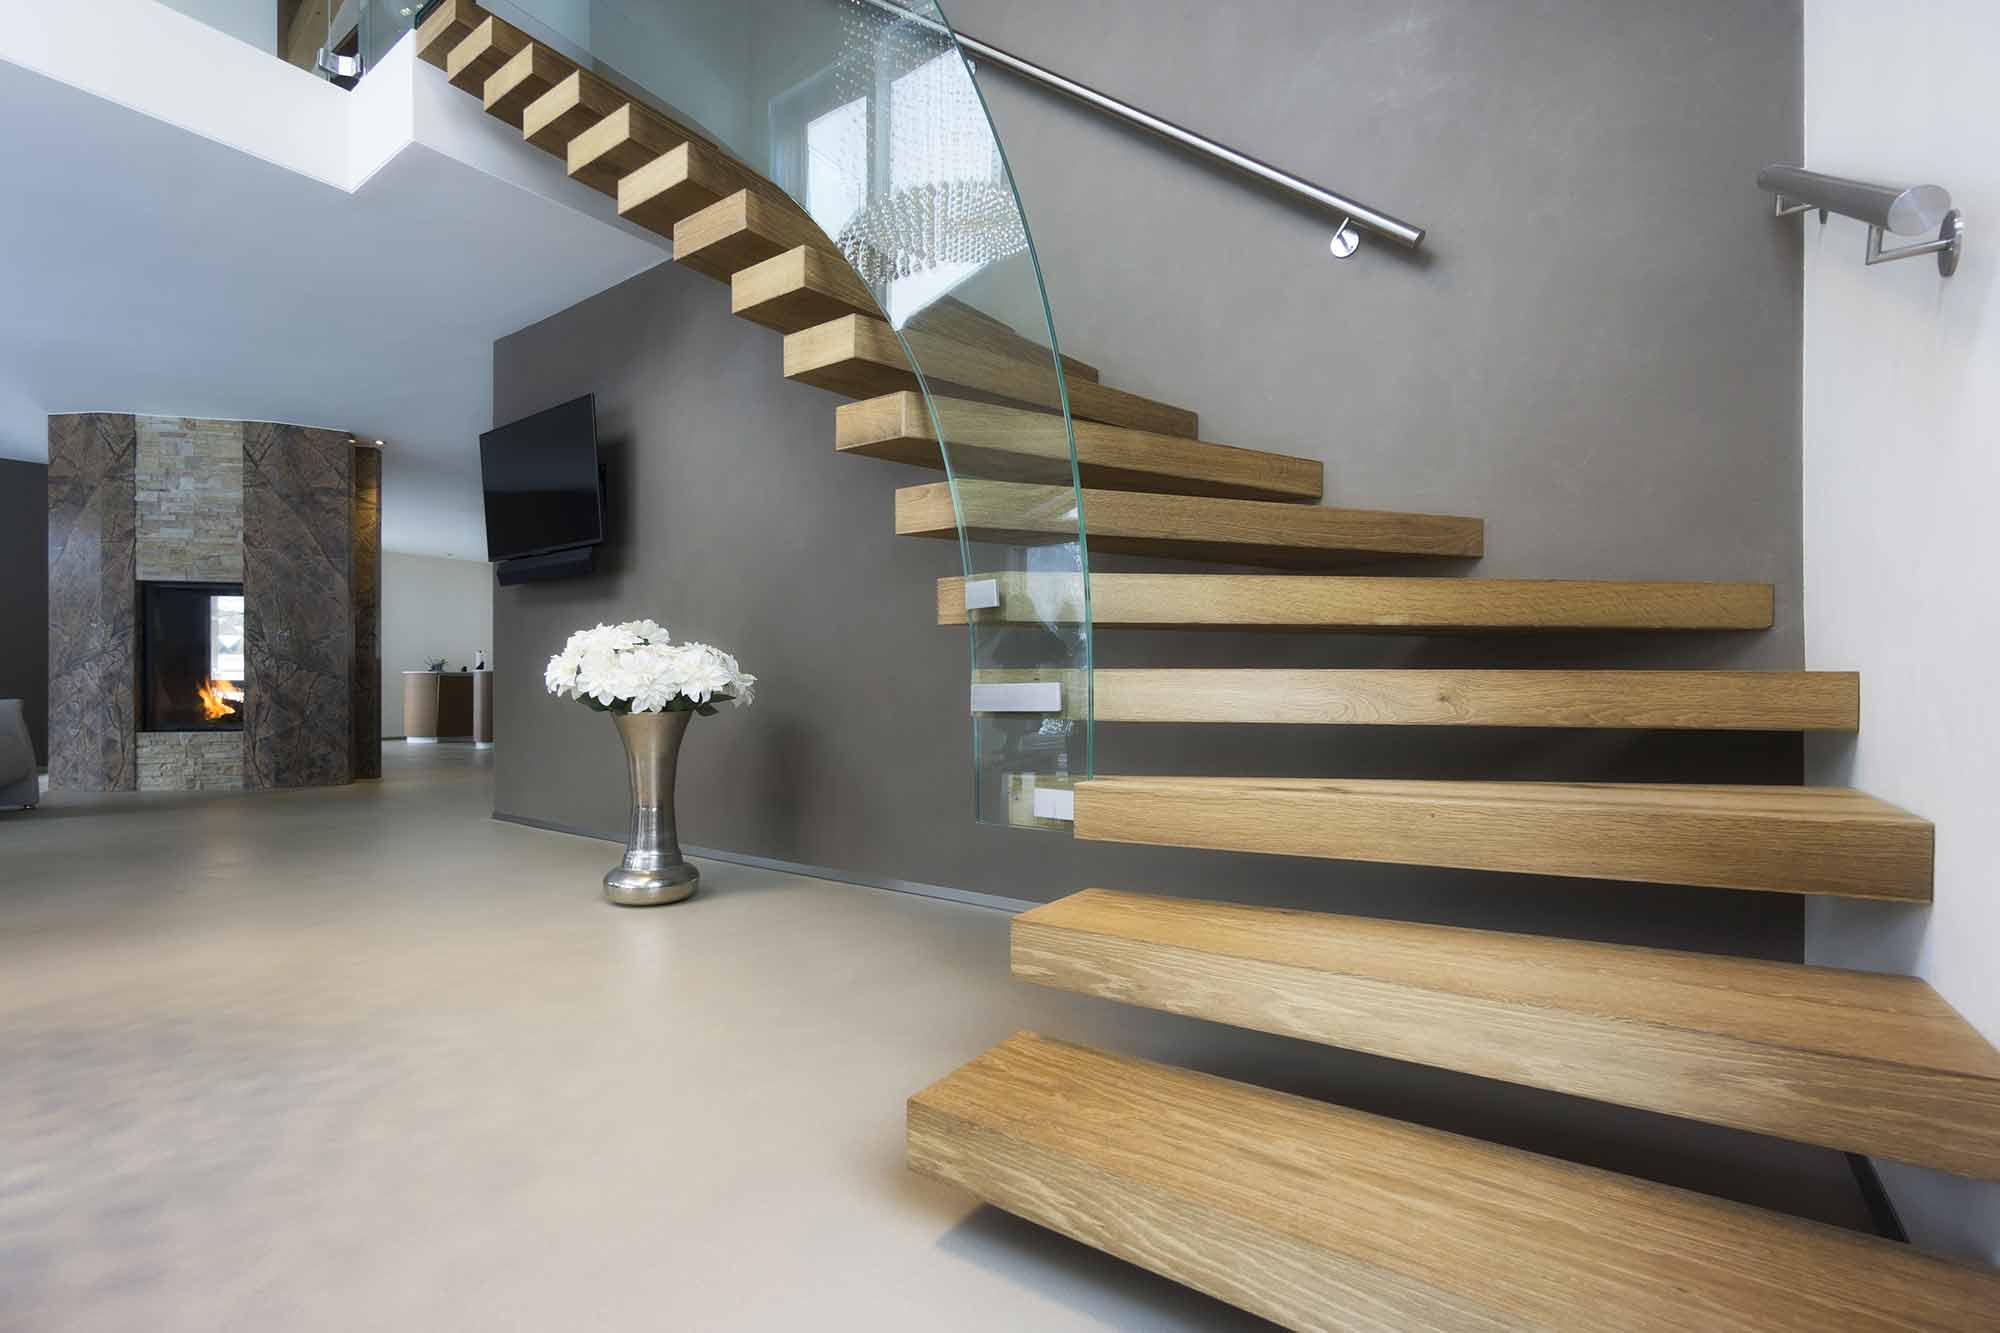 Custom Wood Stair Treads Made from a Light Wood with Glass Railing for a Contemporary Home